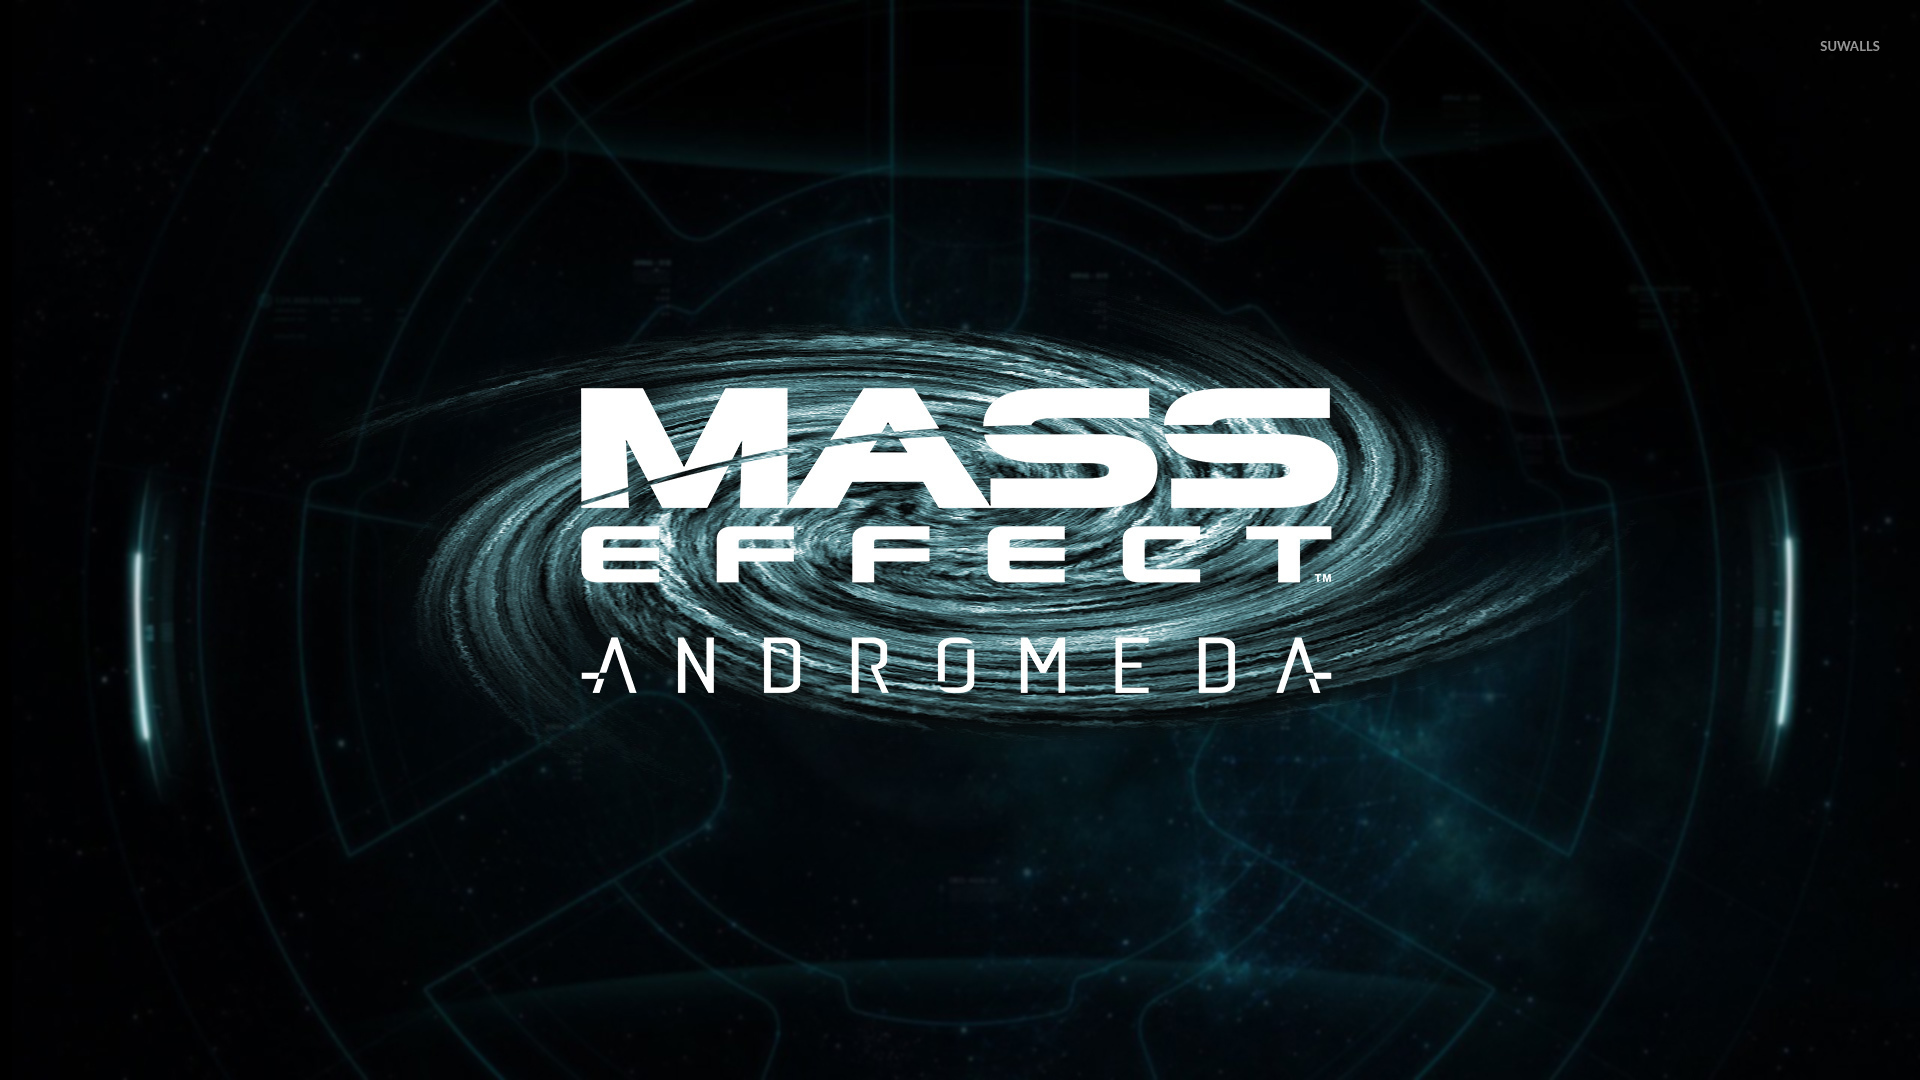 Mass Effect Andromeda Wallpaper Game Wallpapers 52943